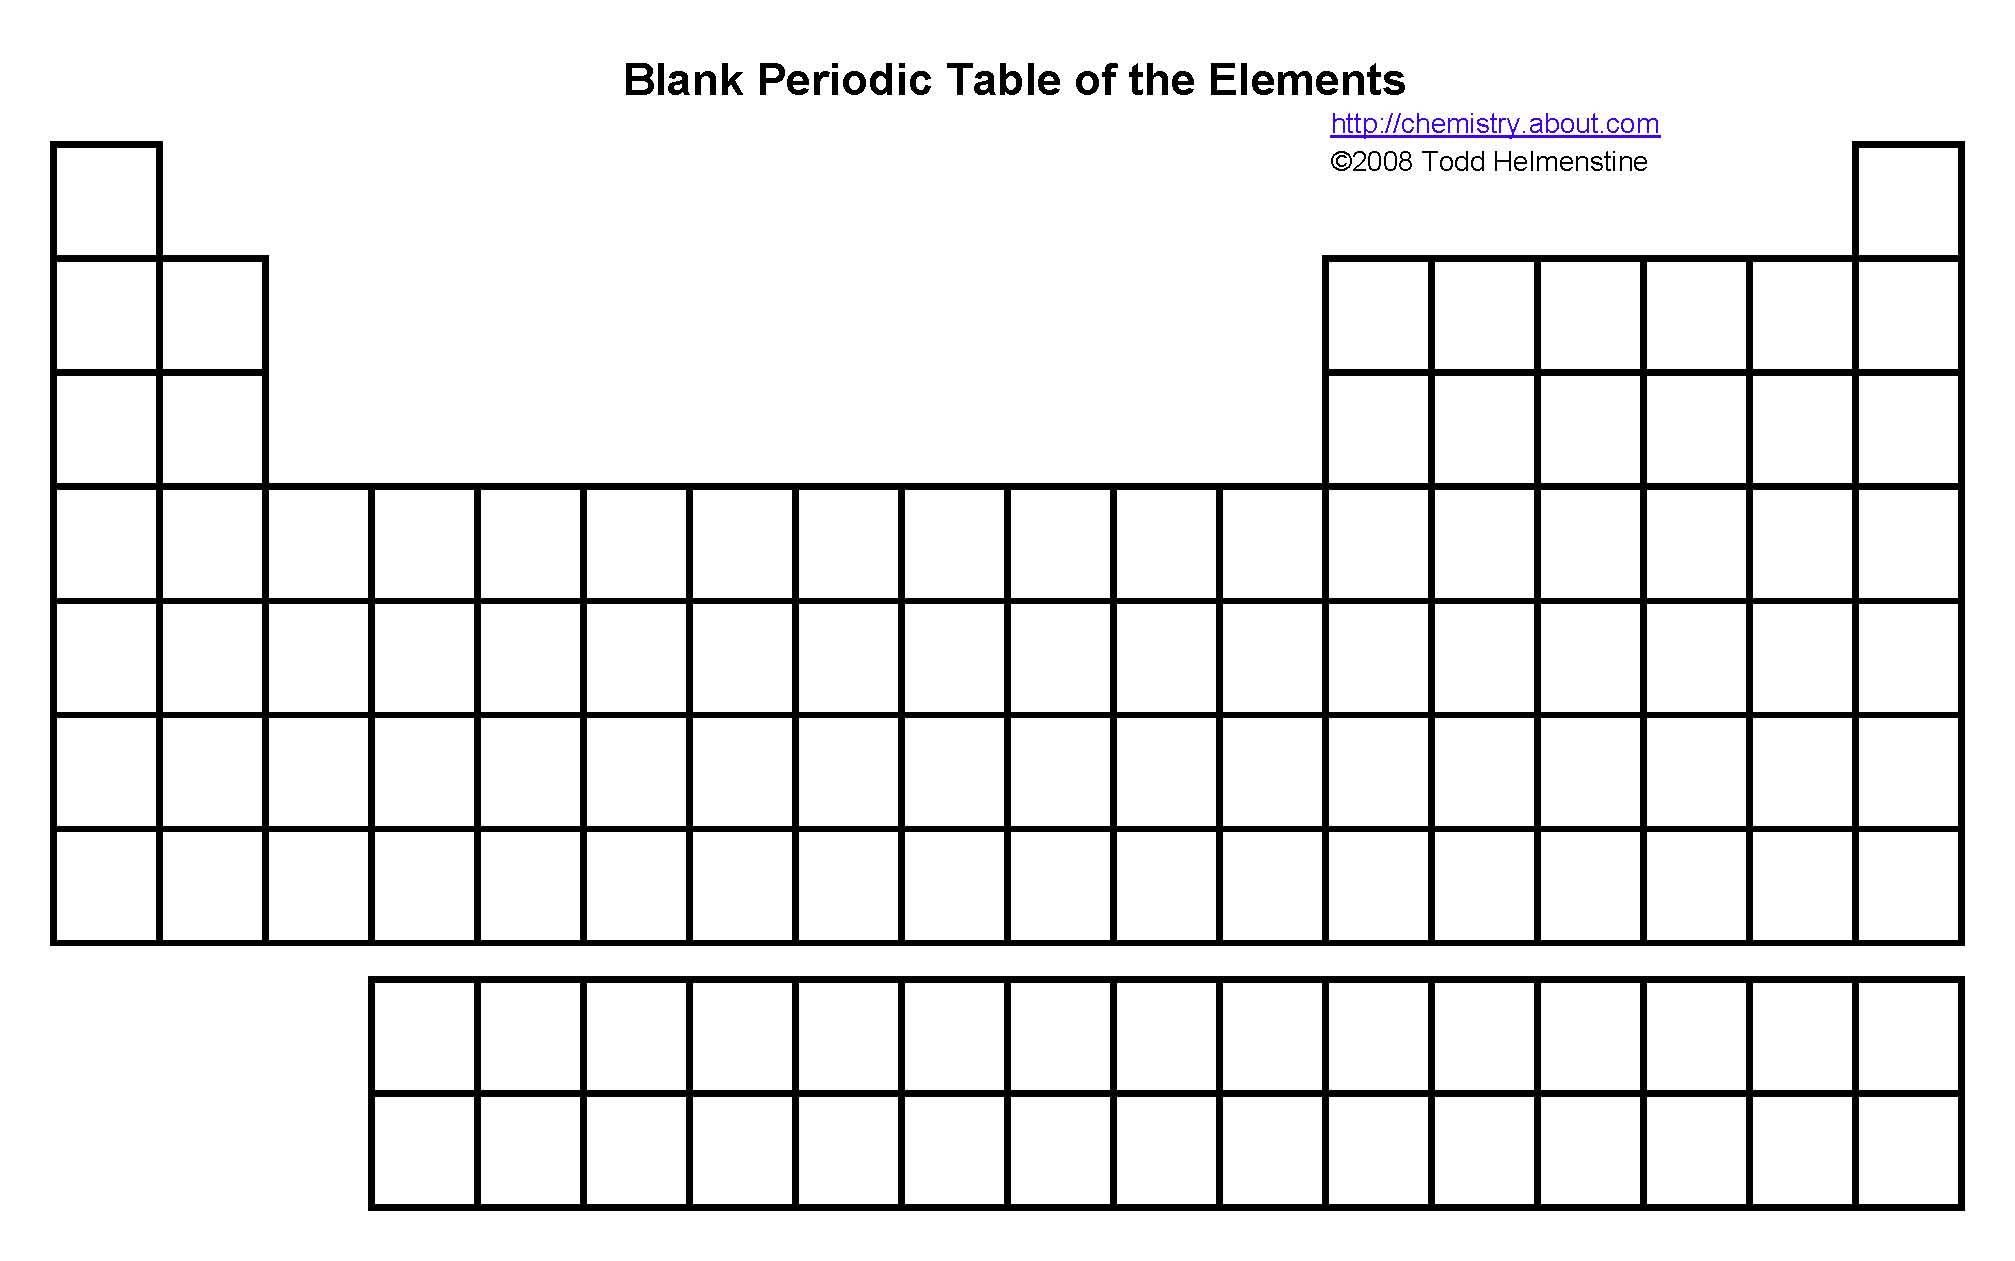 blank periodic table printable to test on element placements [ 2015 x 1261 Pixel ]